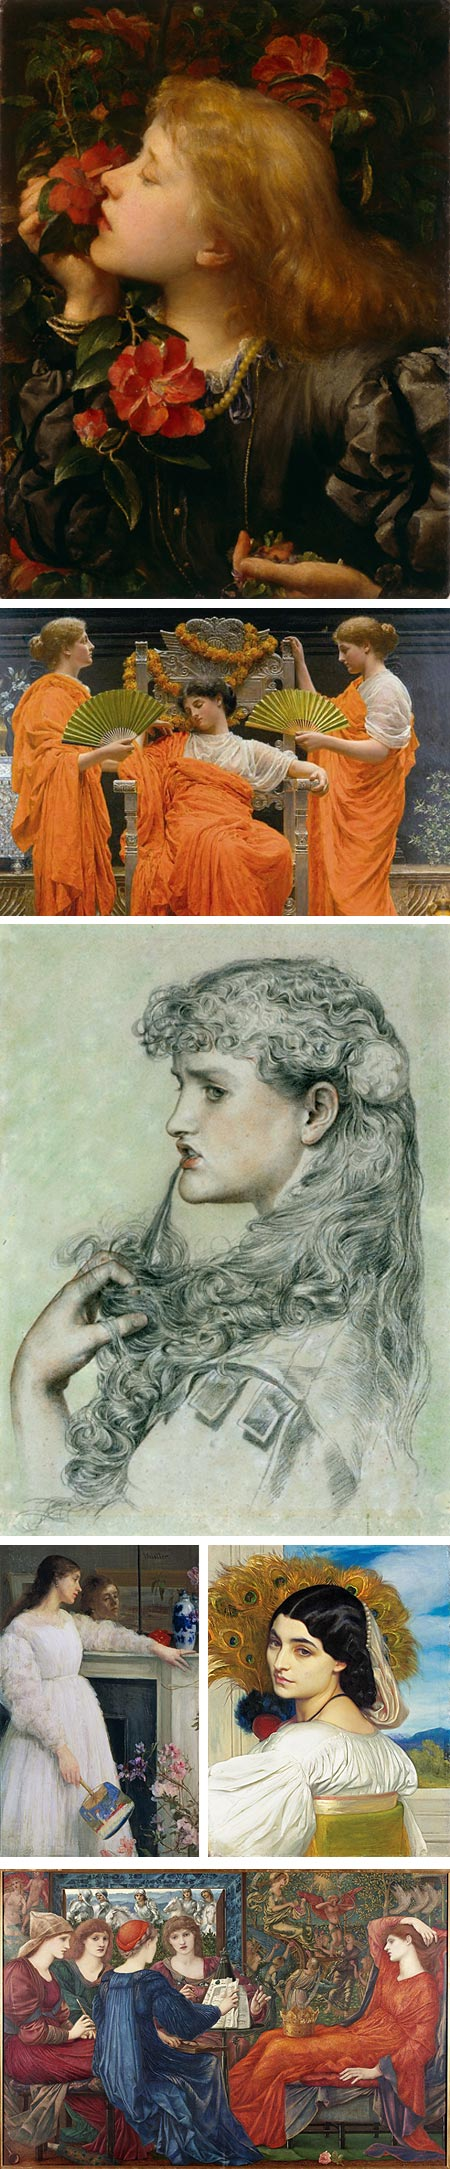 The Cult of Beauty: The Aesthetic Movement 1860-1900: George Frederic Watts, Albert Moore, Frederick Sandys, James McNeill Whistler, Frederic Leighton, Edward Burne-Jones